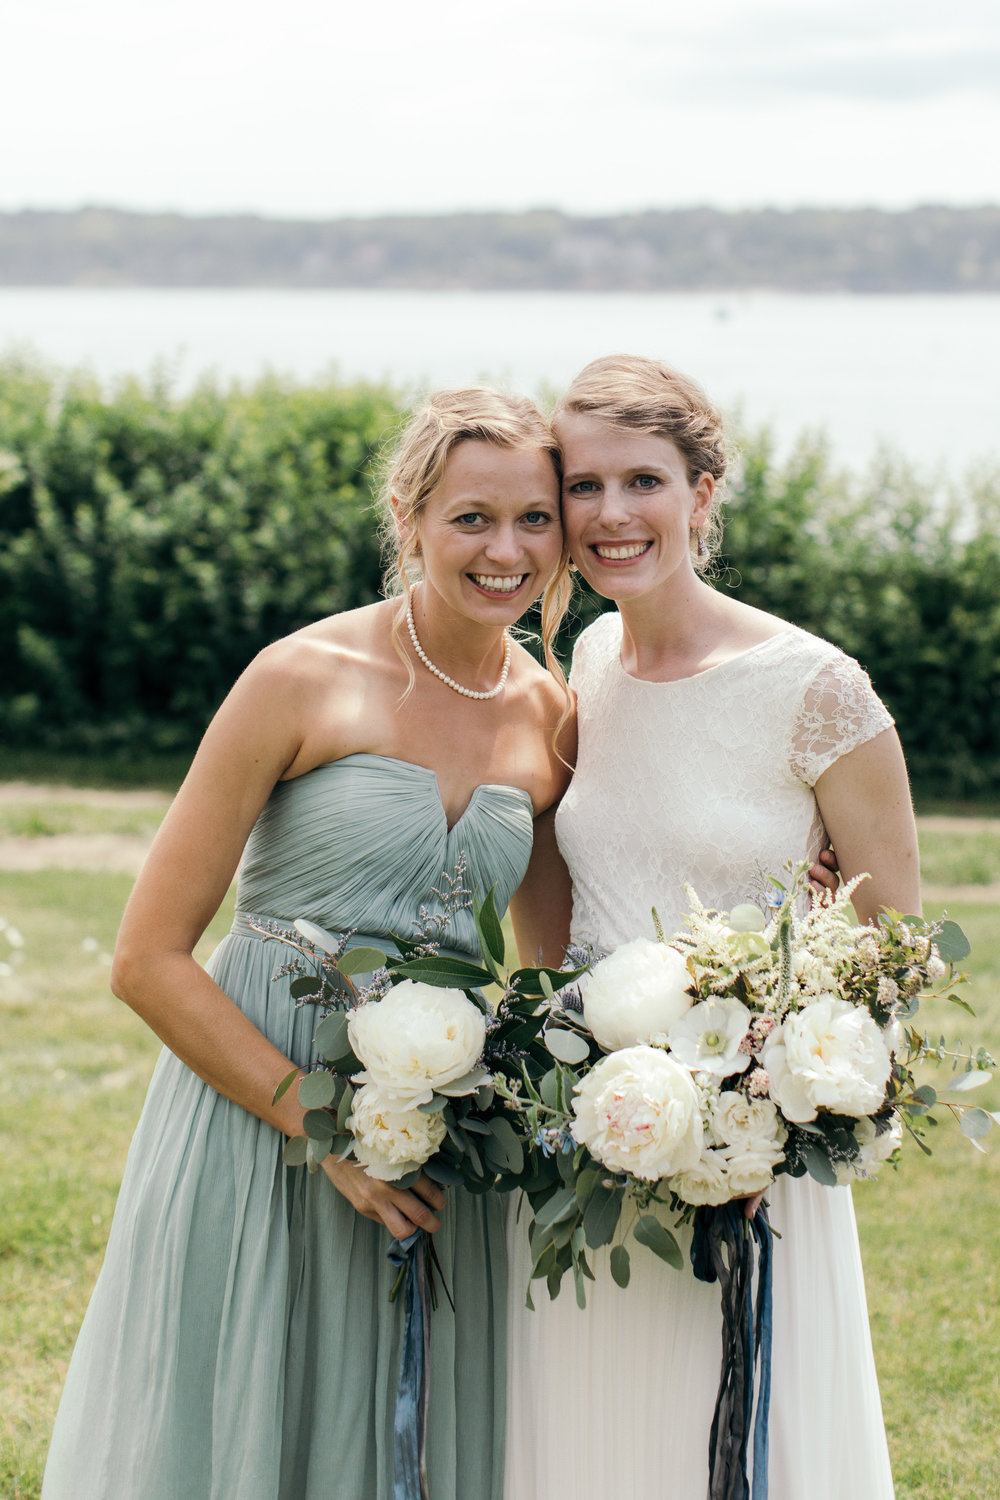 Watershed-Floral-Maine-Island-Wedding-Bridal-Bridesmaid-Bouquet-14.jpg